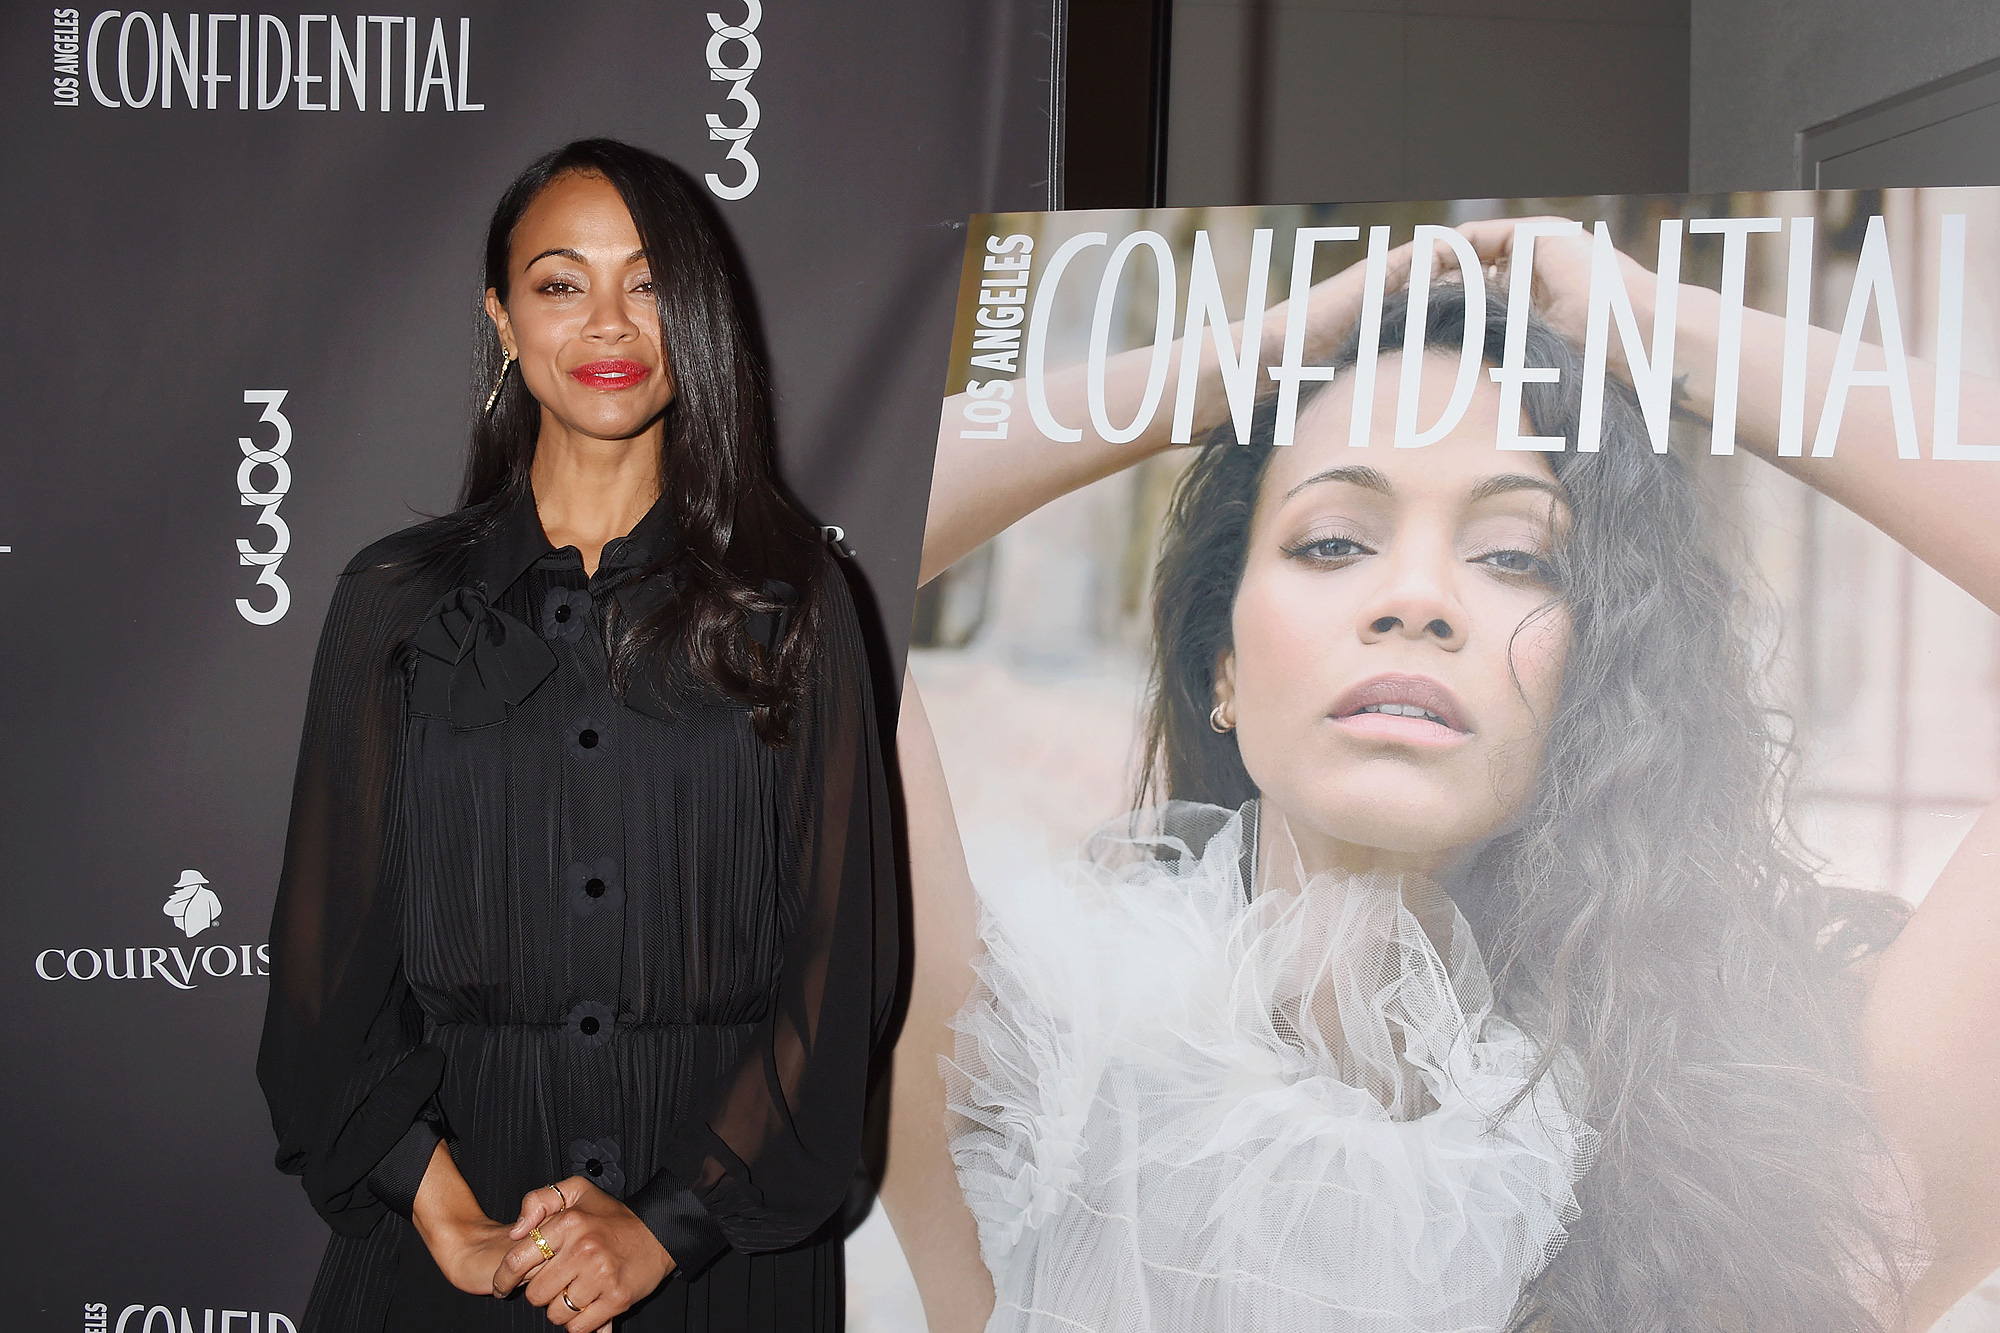 Los Angeles Confidential Celebrates Winter Issue With Cover Star Zoe Saldana